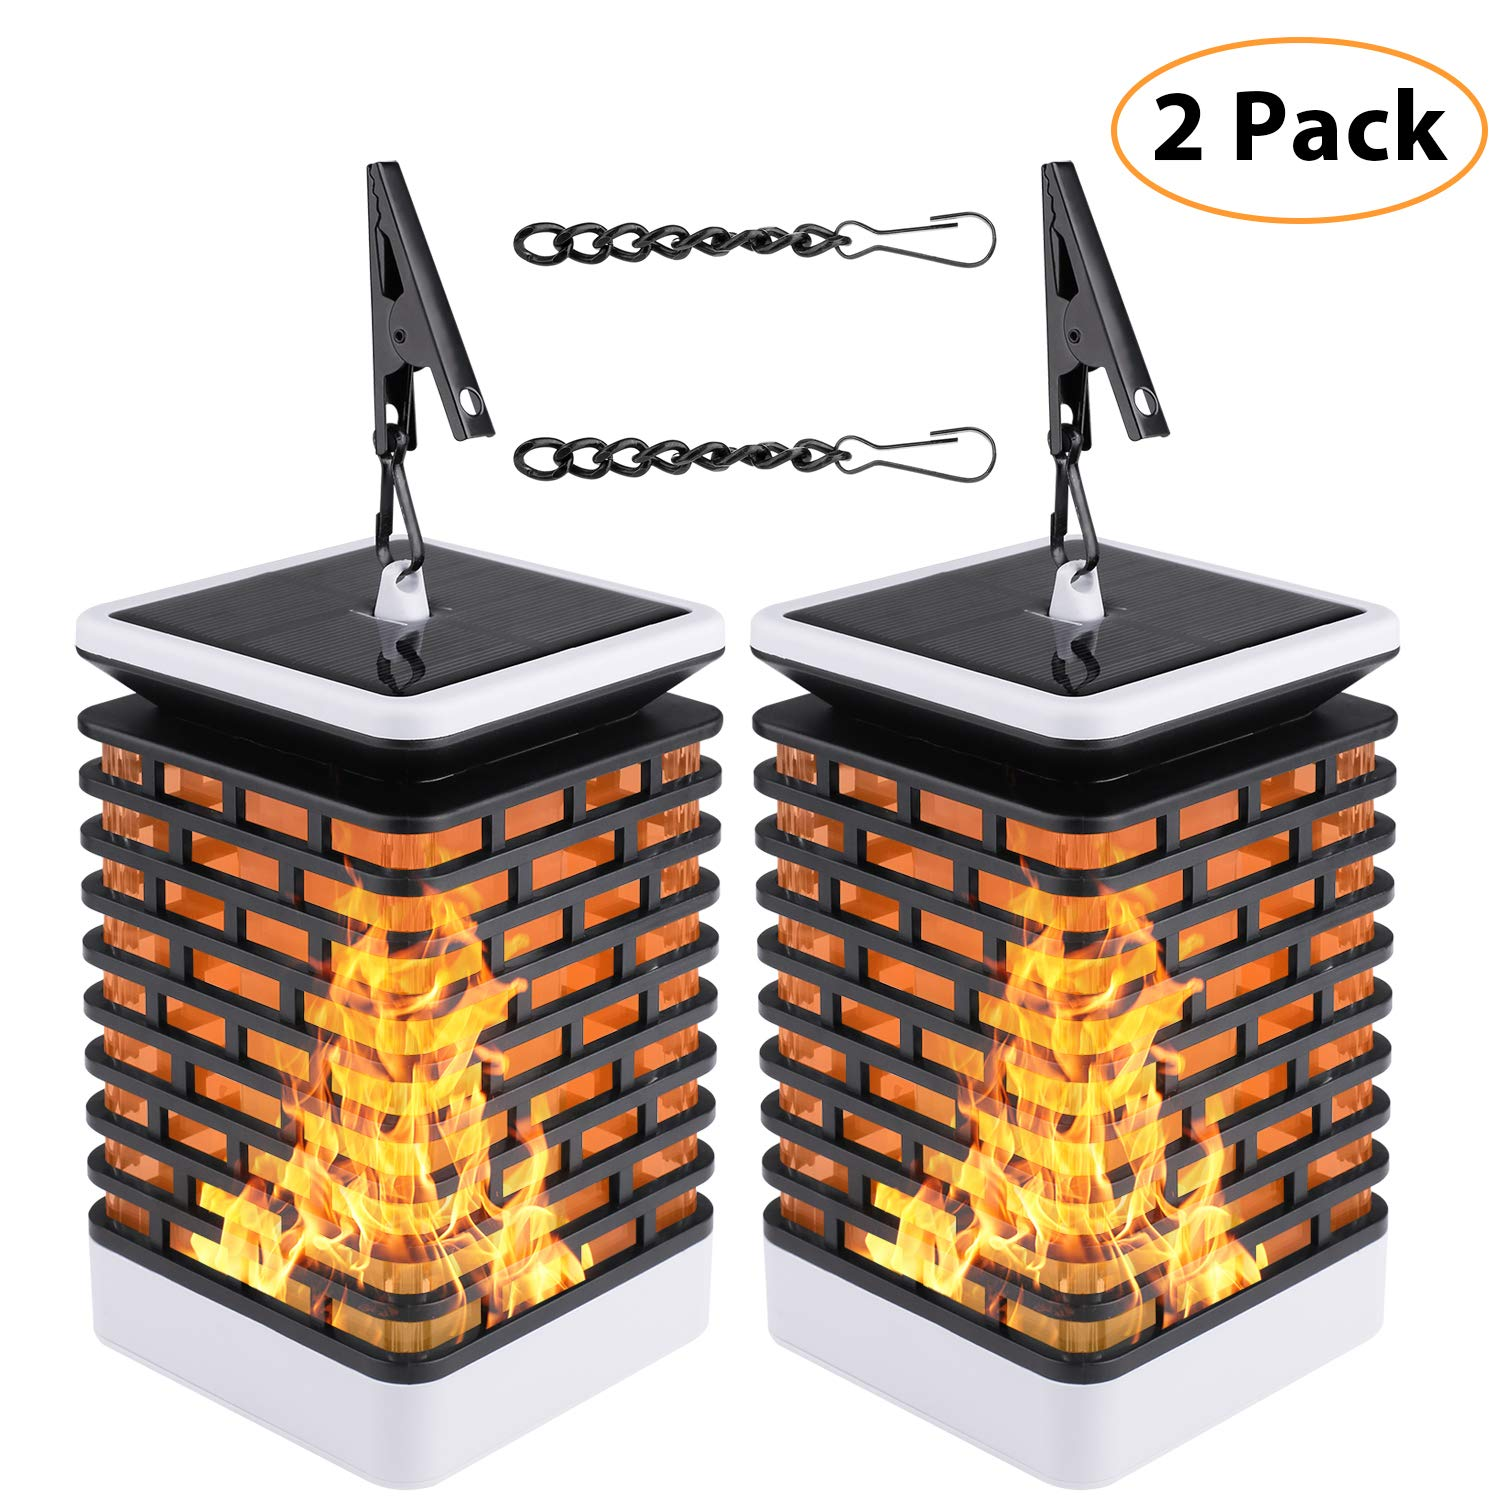 Sanniu 2 Packs Solar Lantern Lights Dancing Flame IP65 Waterproof 76 LED Outdoor Tabletop Lanterns Solar Powered Camping Lights Hook Tree Walkway Landscape